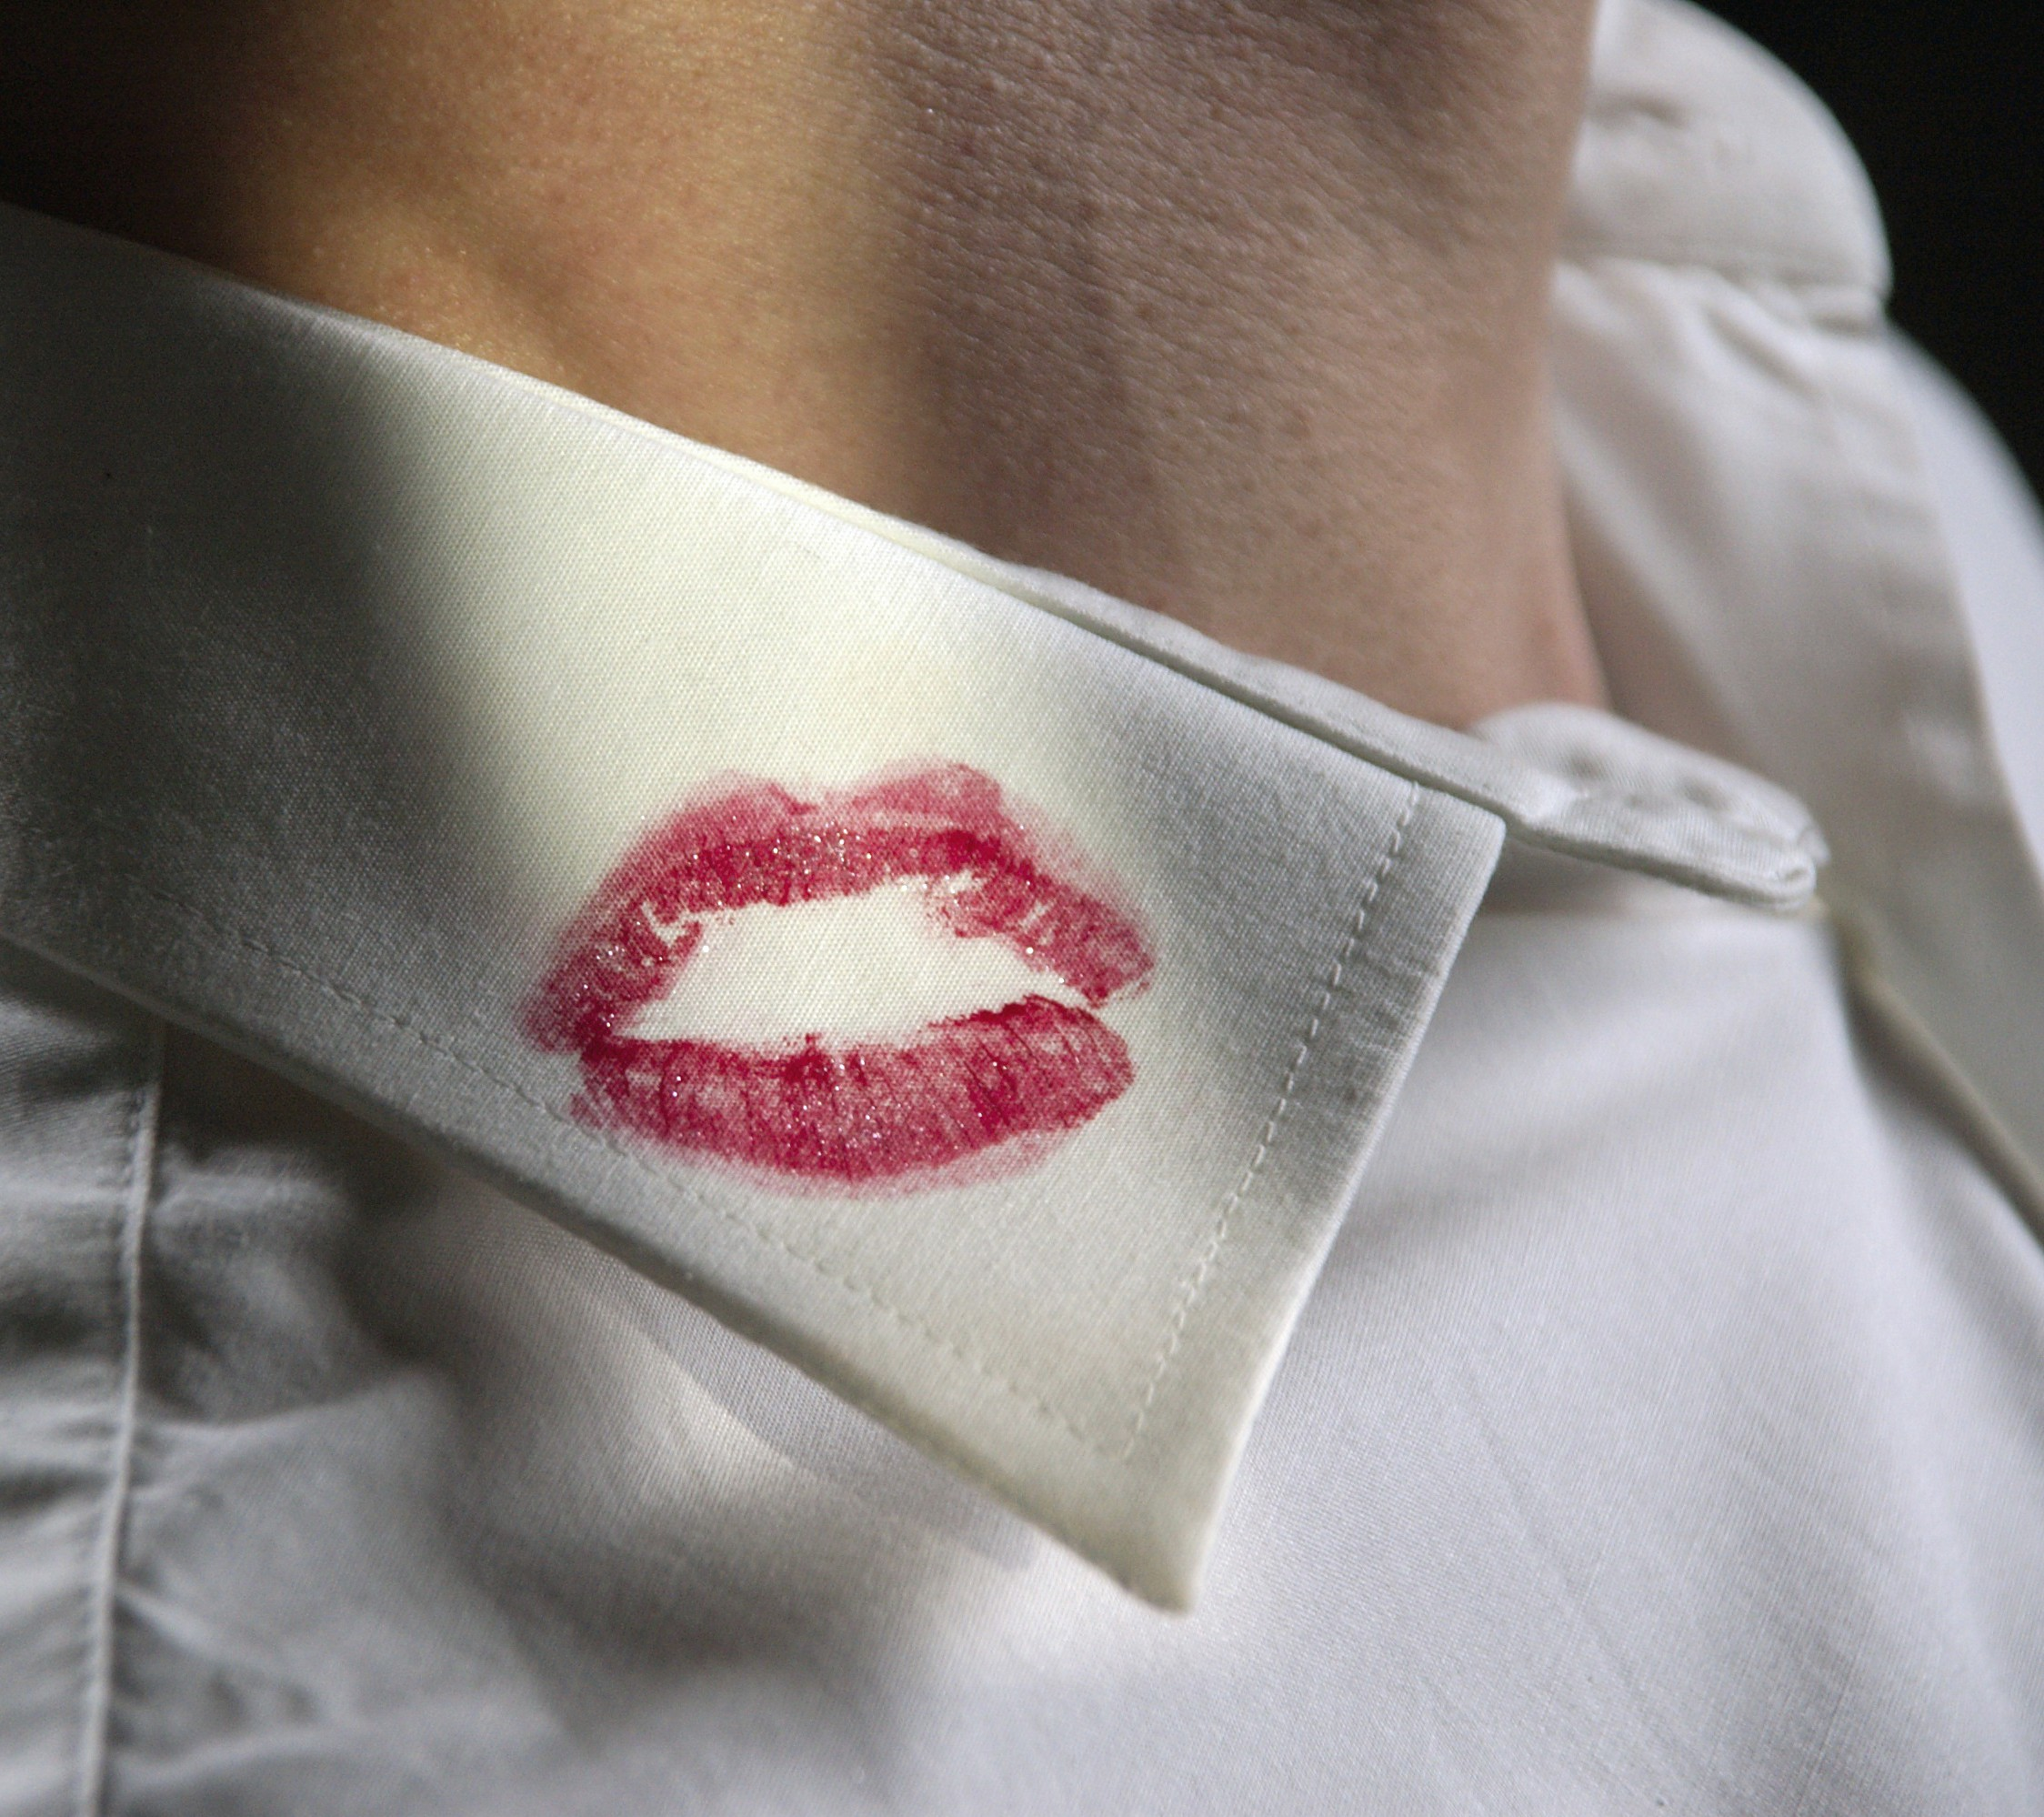 Tips For The Wife Removing Lipstick Stains Taryn Cox